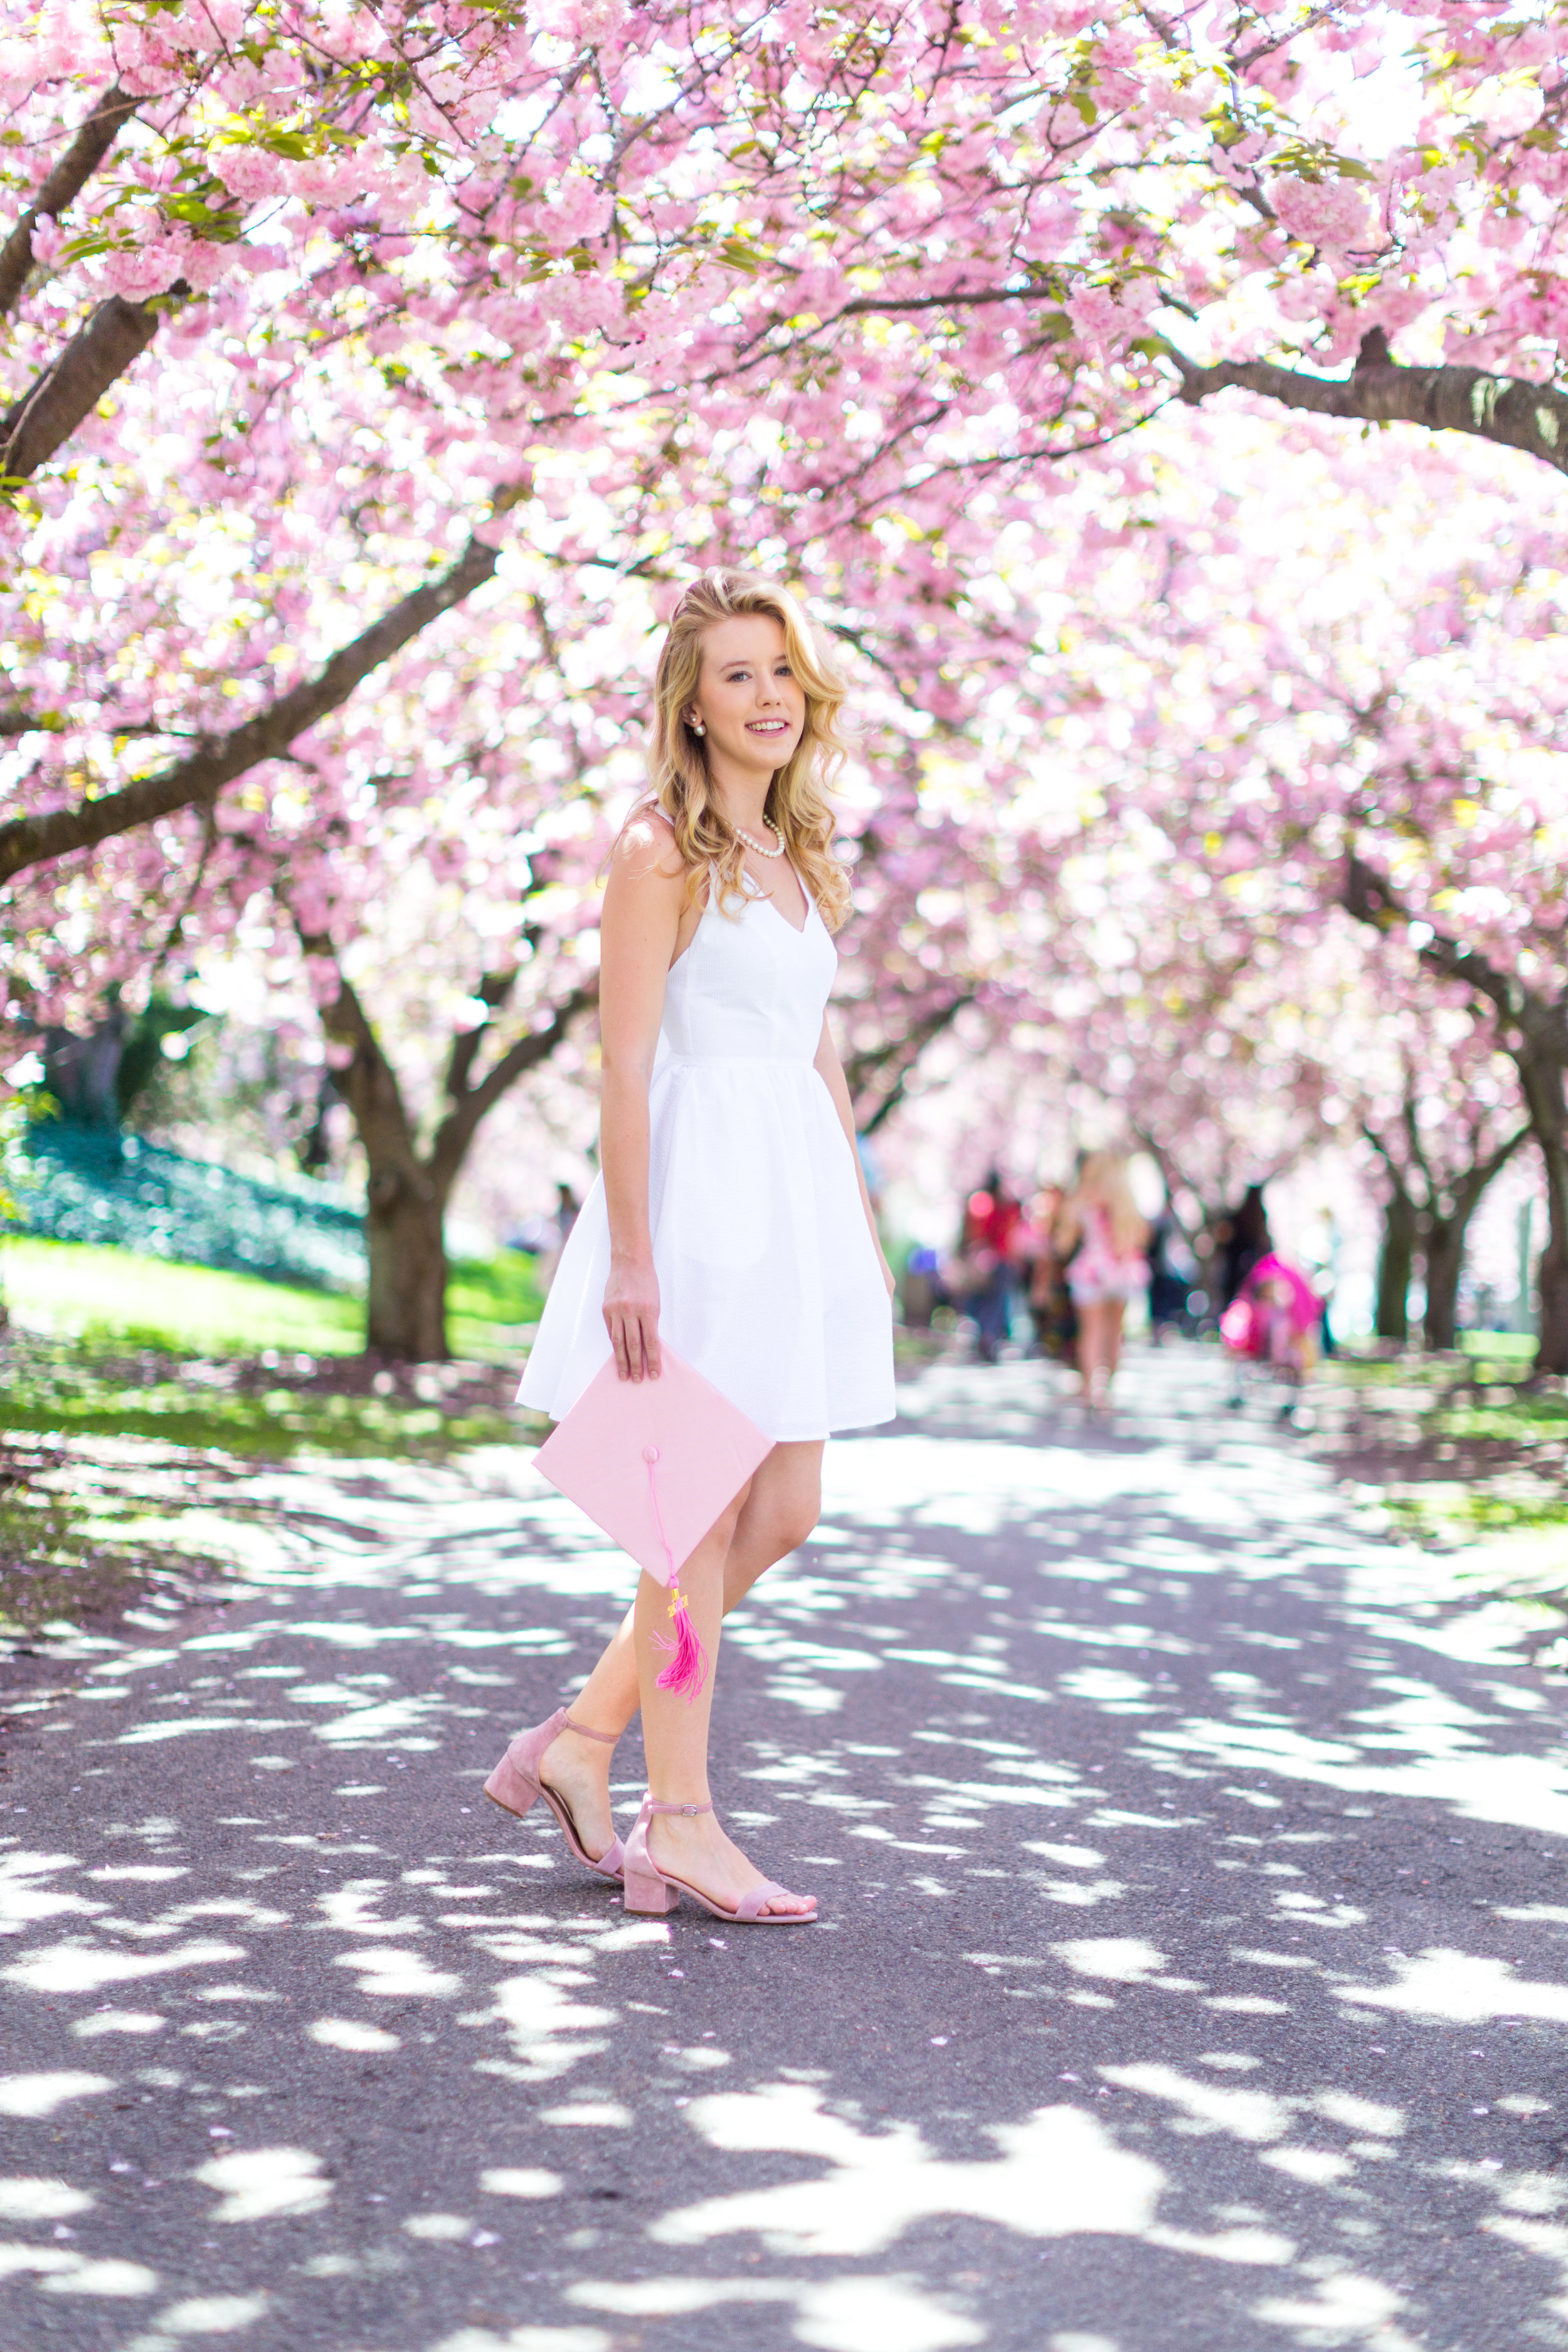 White Graduation Dress Spring Pink Cherry Blossoms NYC-2.jpg